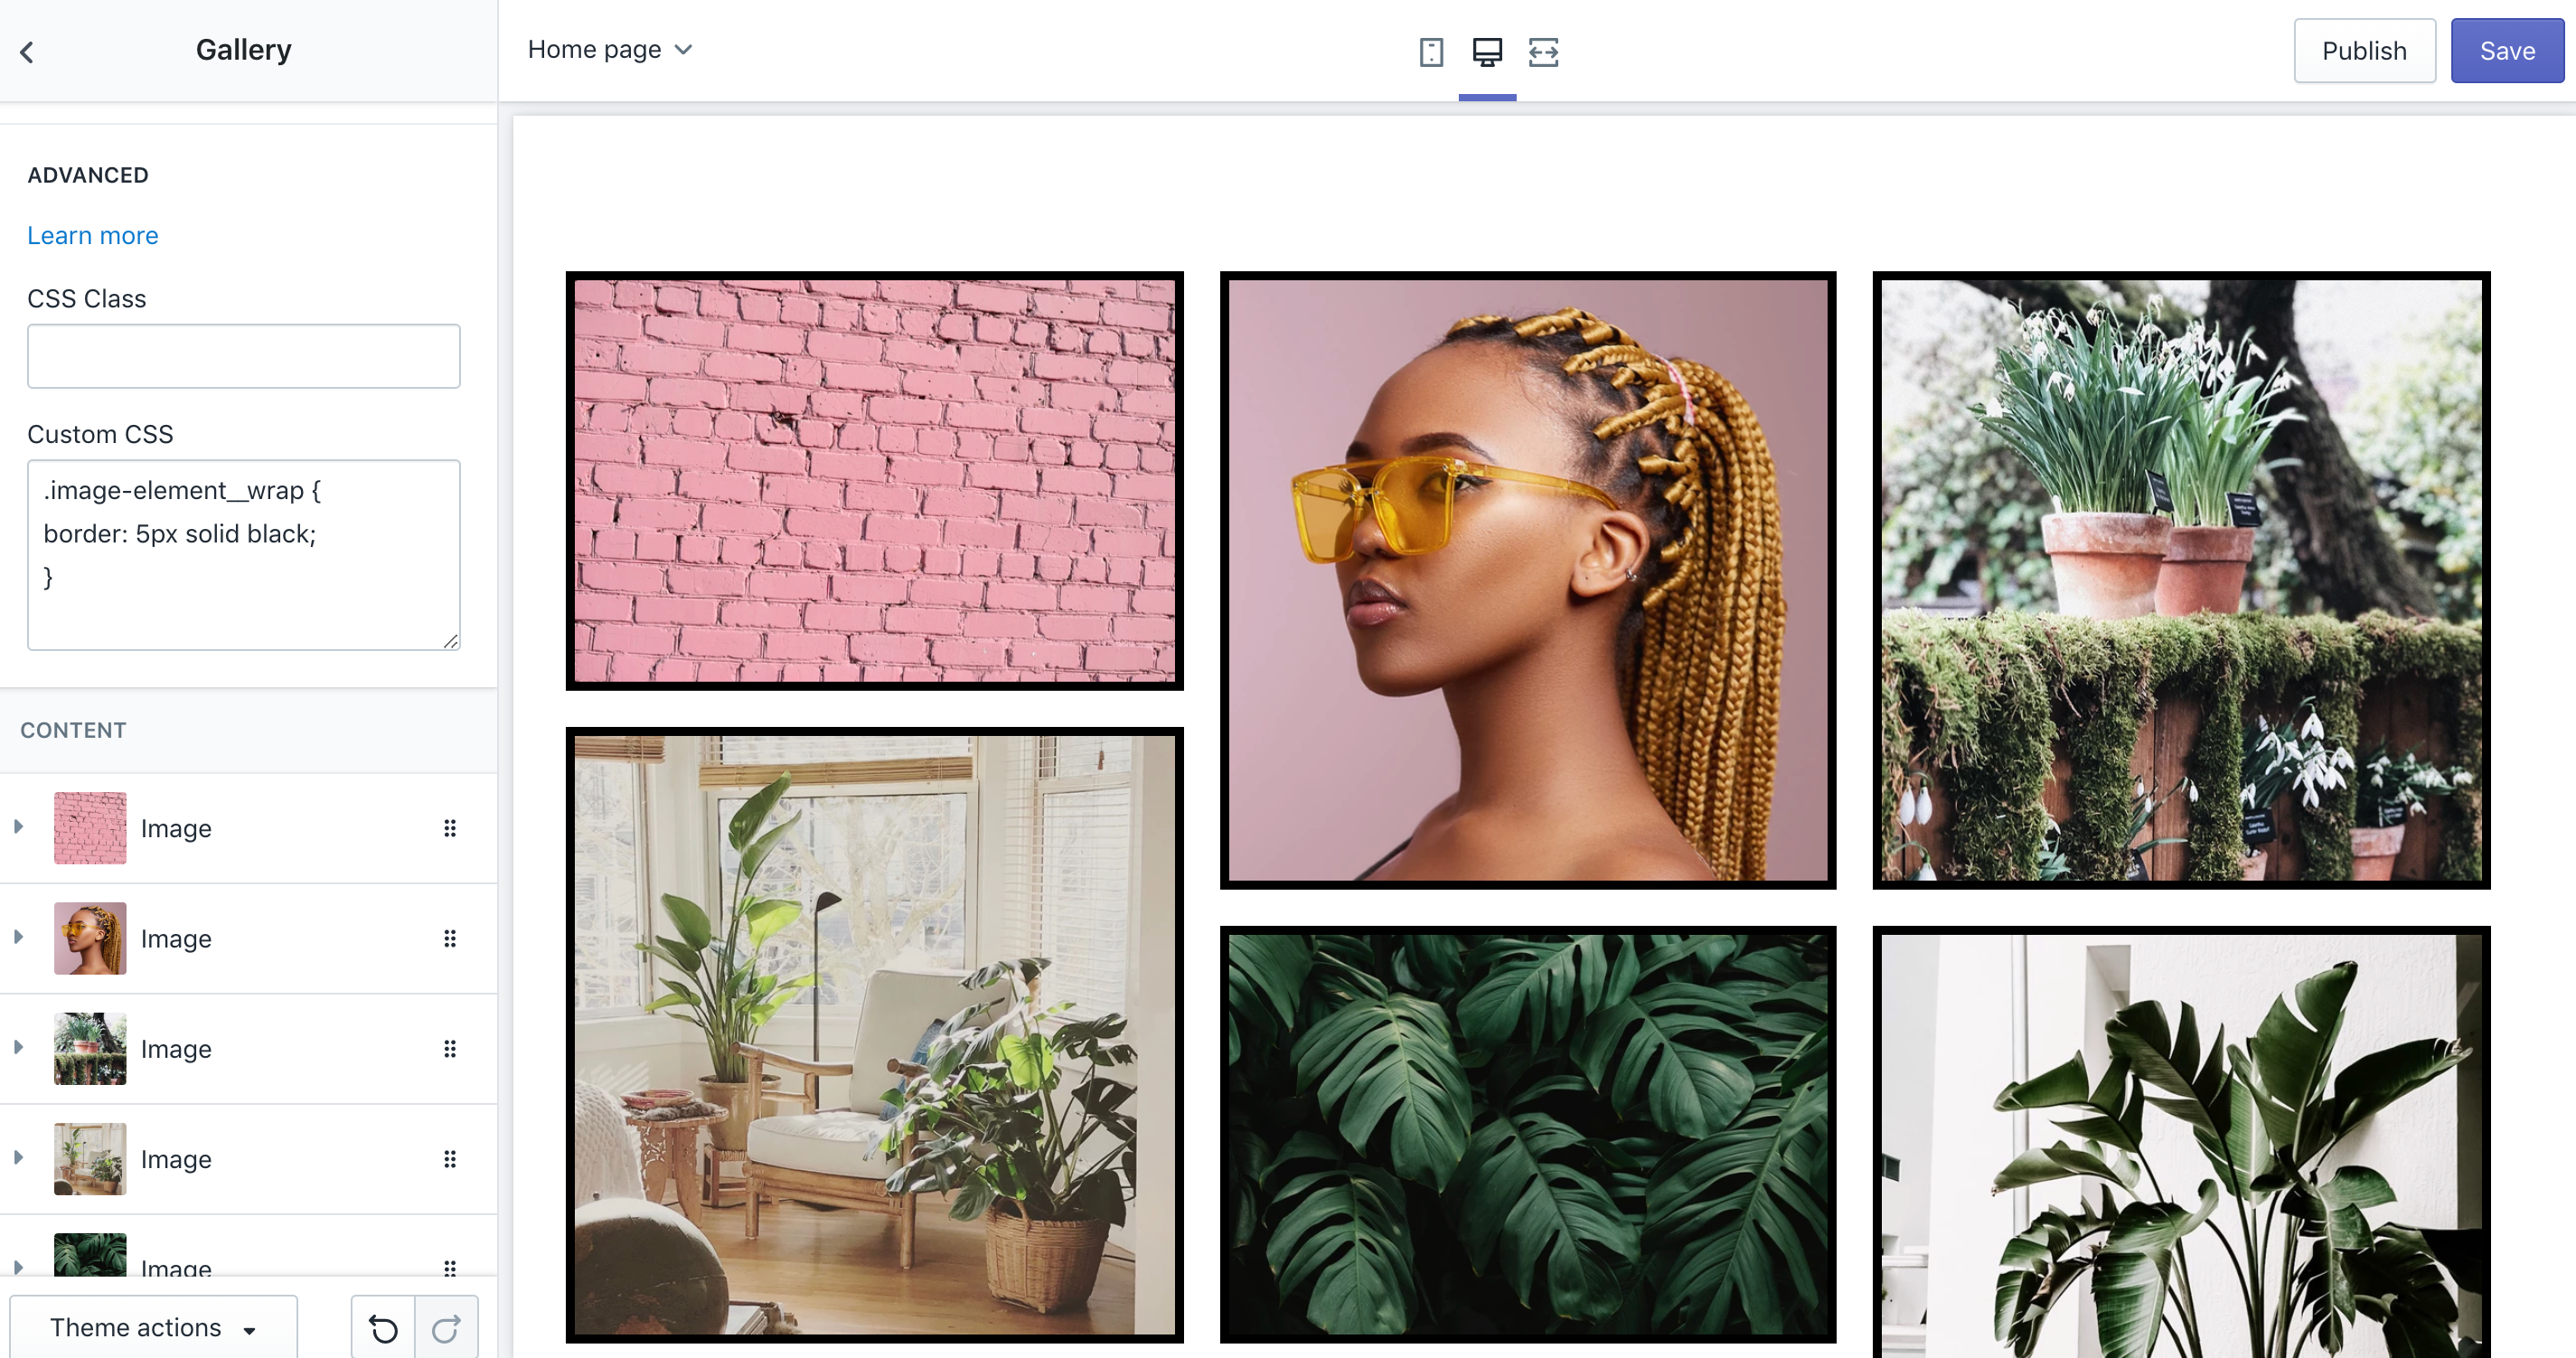 gallery-section-custom-css.png